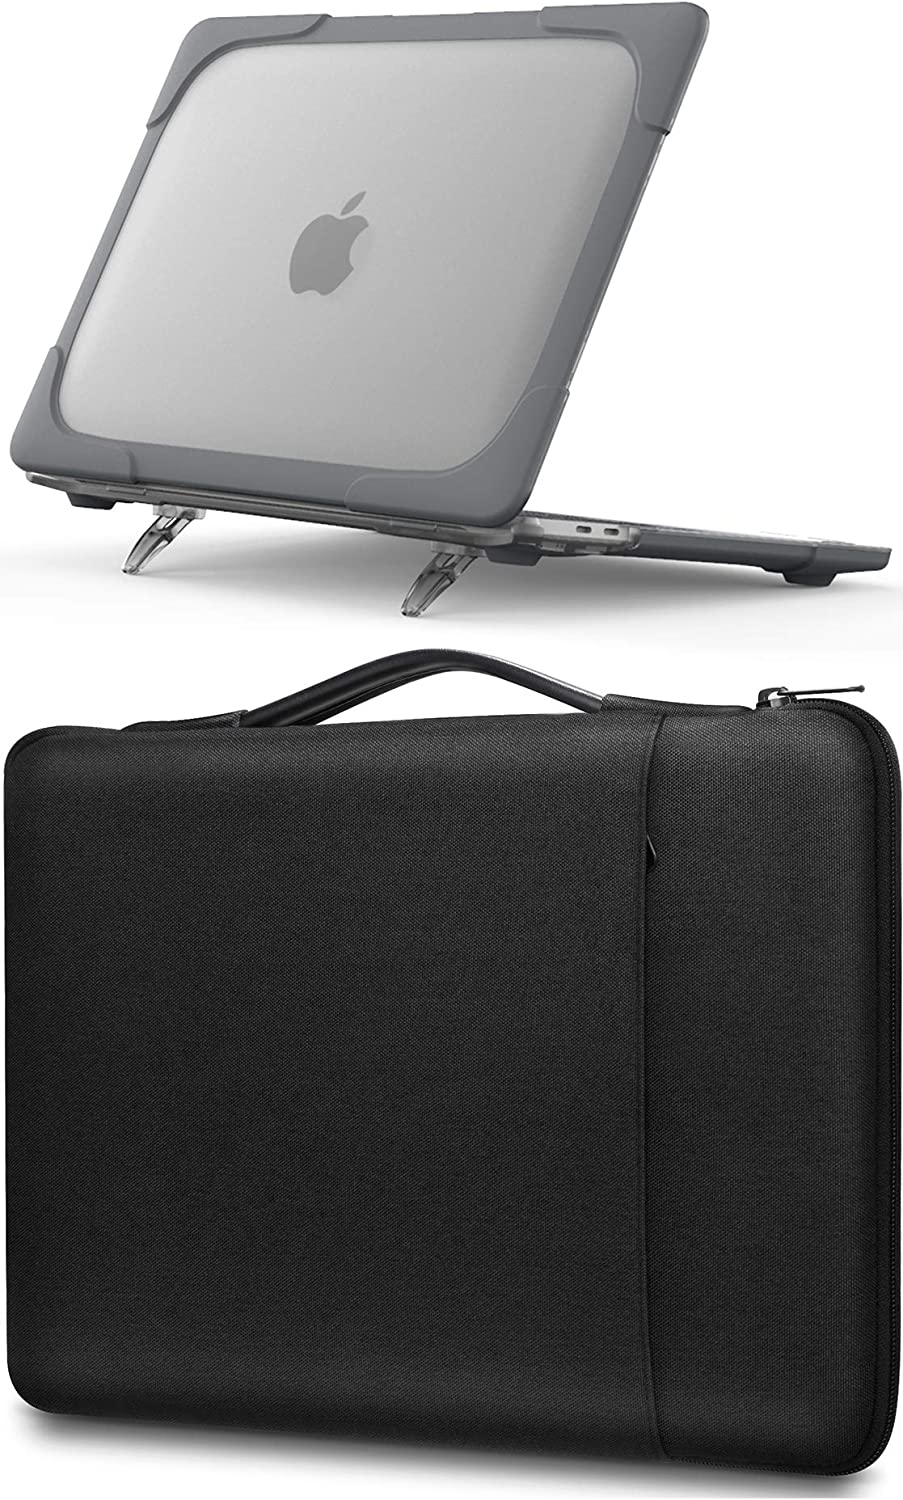 ProCase MacBook Pro 13 Inch Grey Hard Shell Case (M1 A2338/ A2289/ A2251) + Black Sleeve Bag, Compatible with 2020 Released MacBook Pro New 13-inch Model M1 A2338/ A2289/ A2251 -Grey+ Black